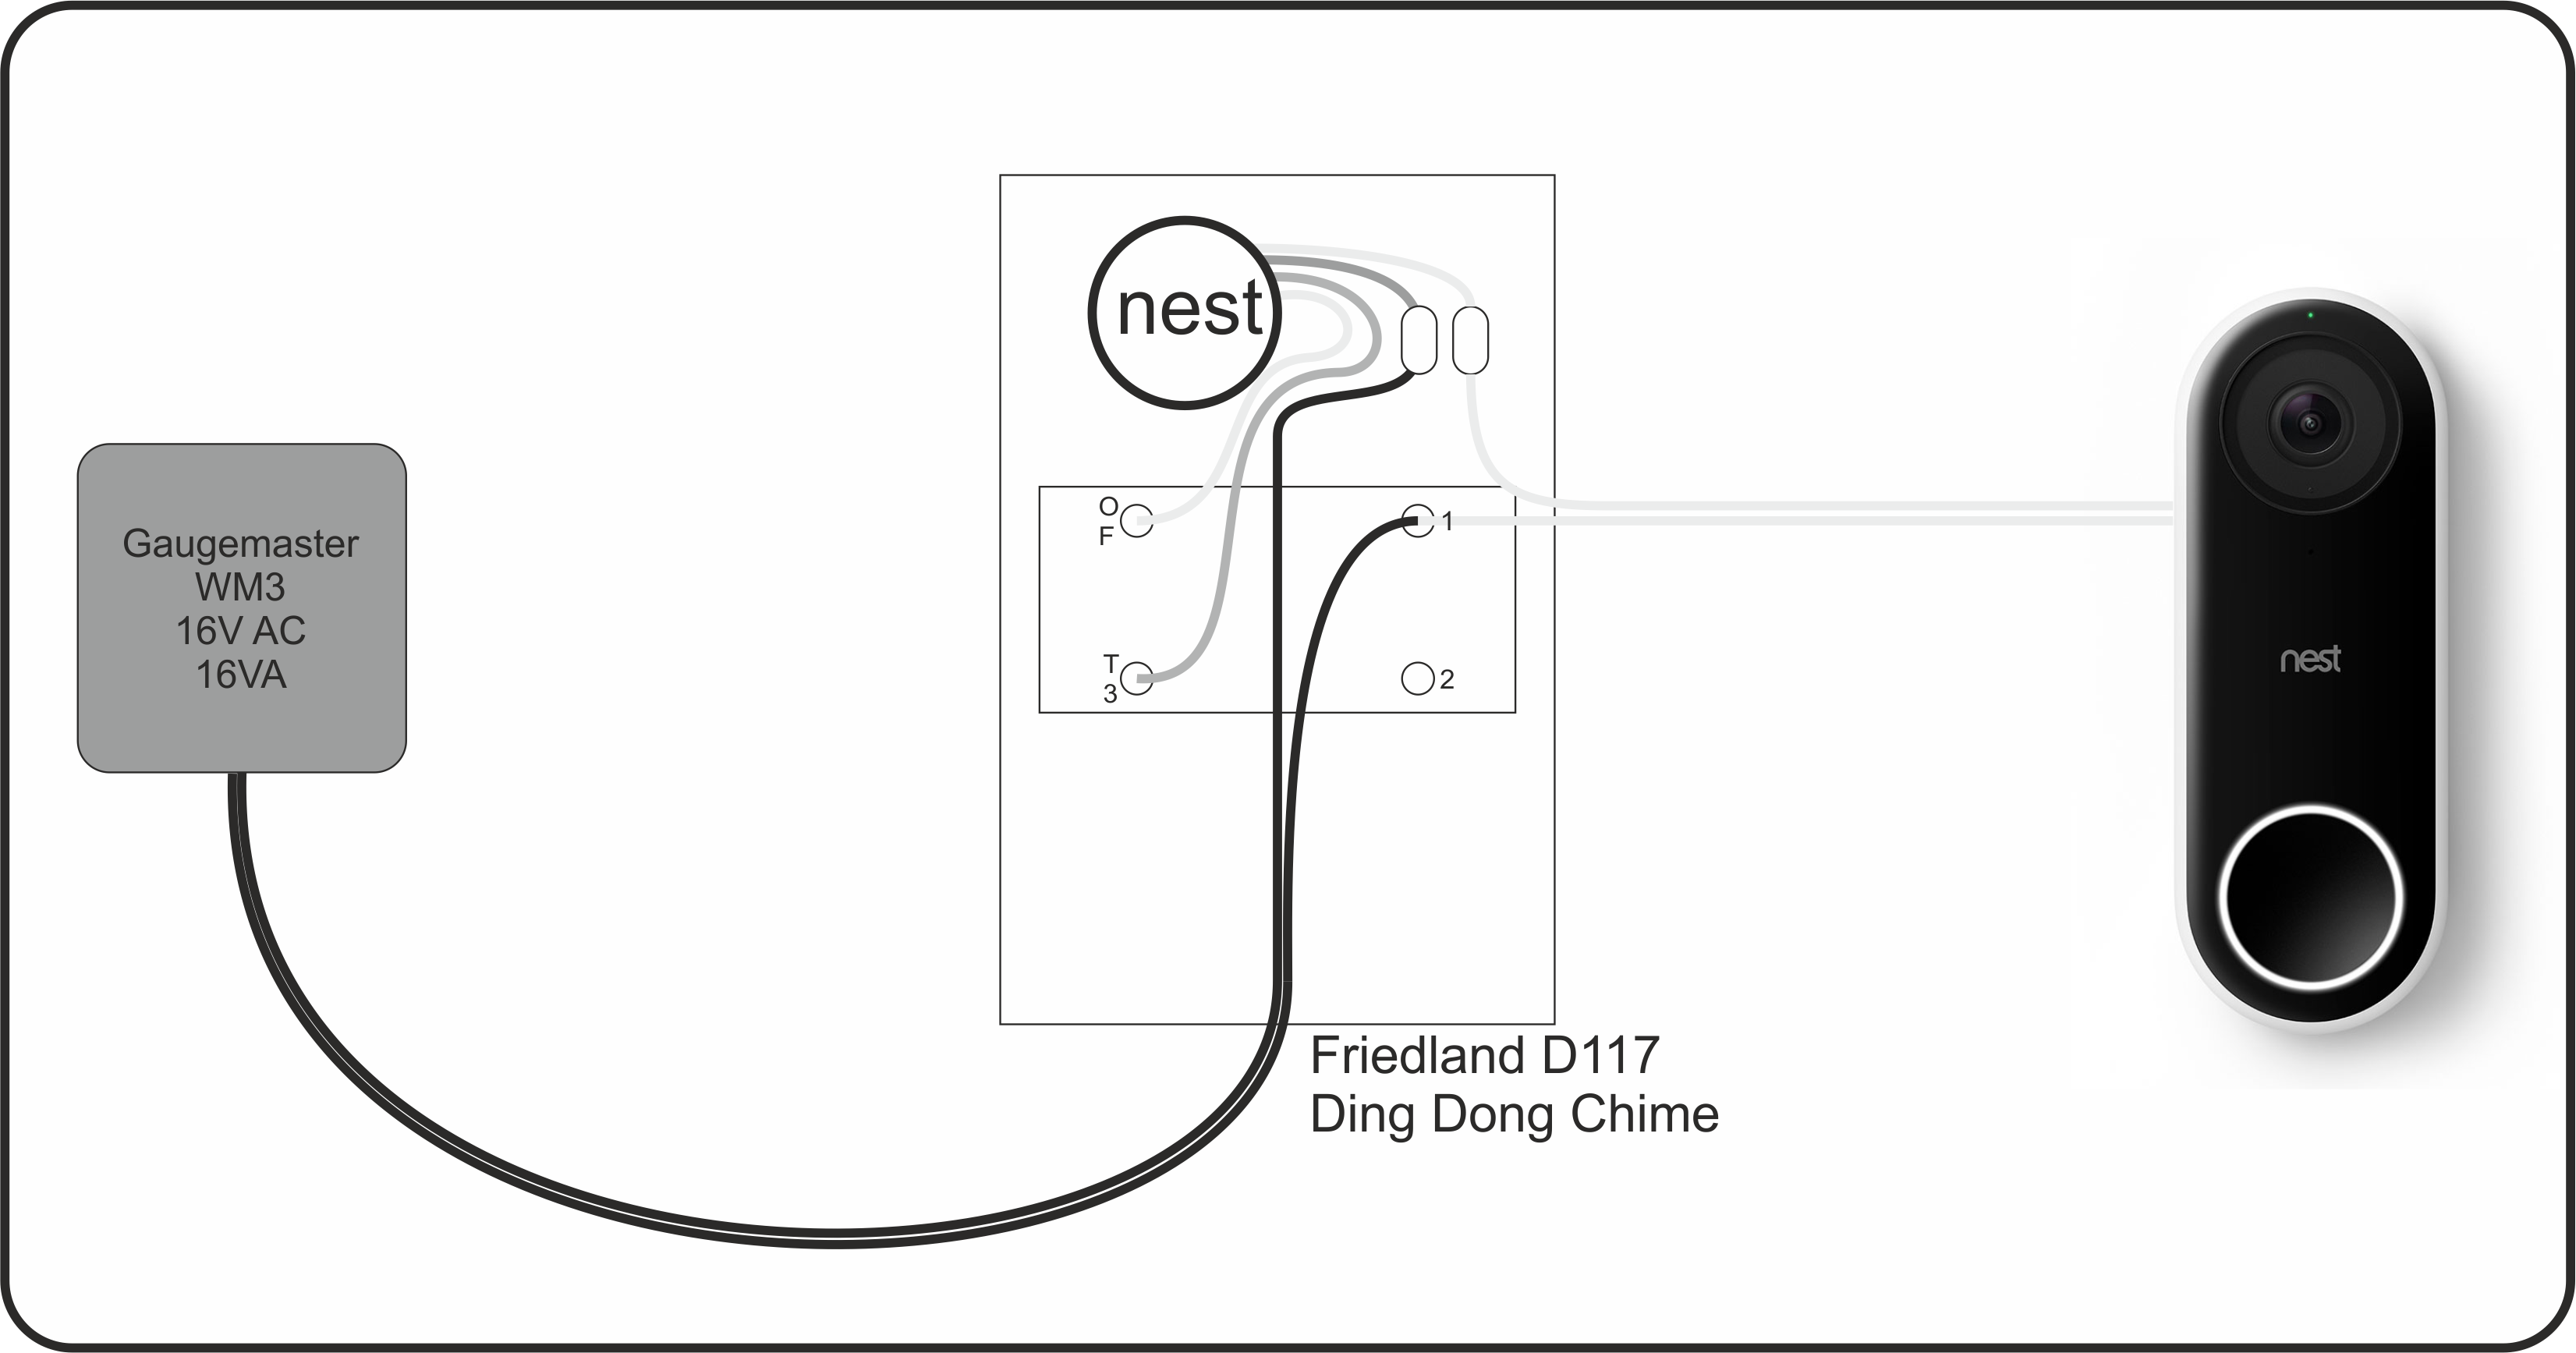 The Nest Hello Video Doorbell In Uk Life Universe And Friedland Wiring Diagram Second Issue I Discovered That Applies To Non Us Countries Is Has Hardware Support Both 24ghz 5ghz Wifi Bands But State